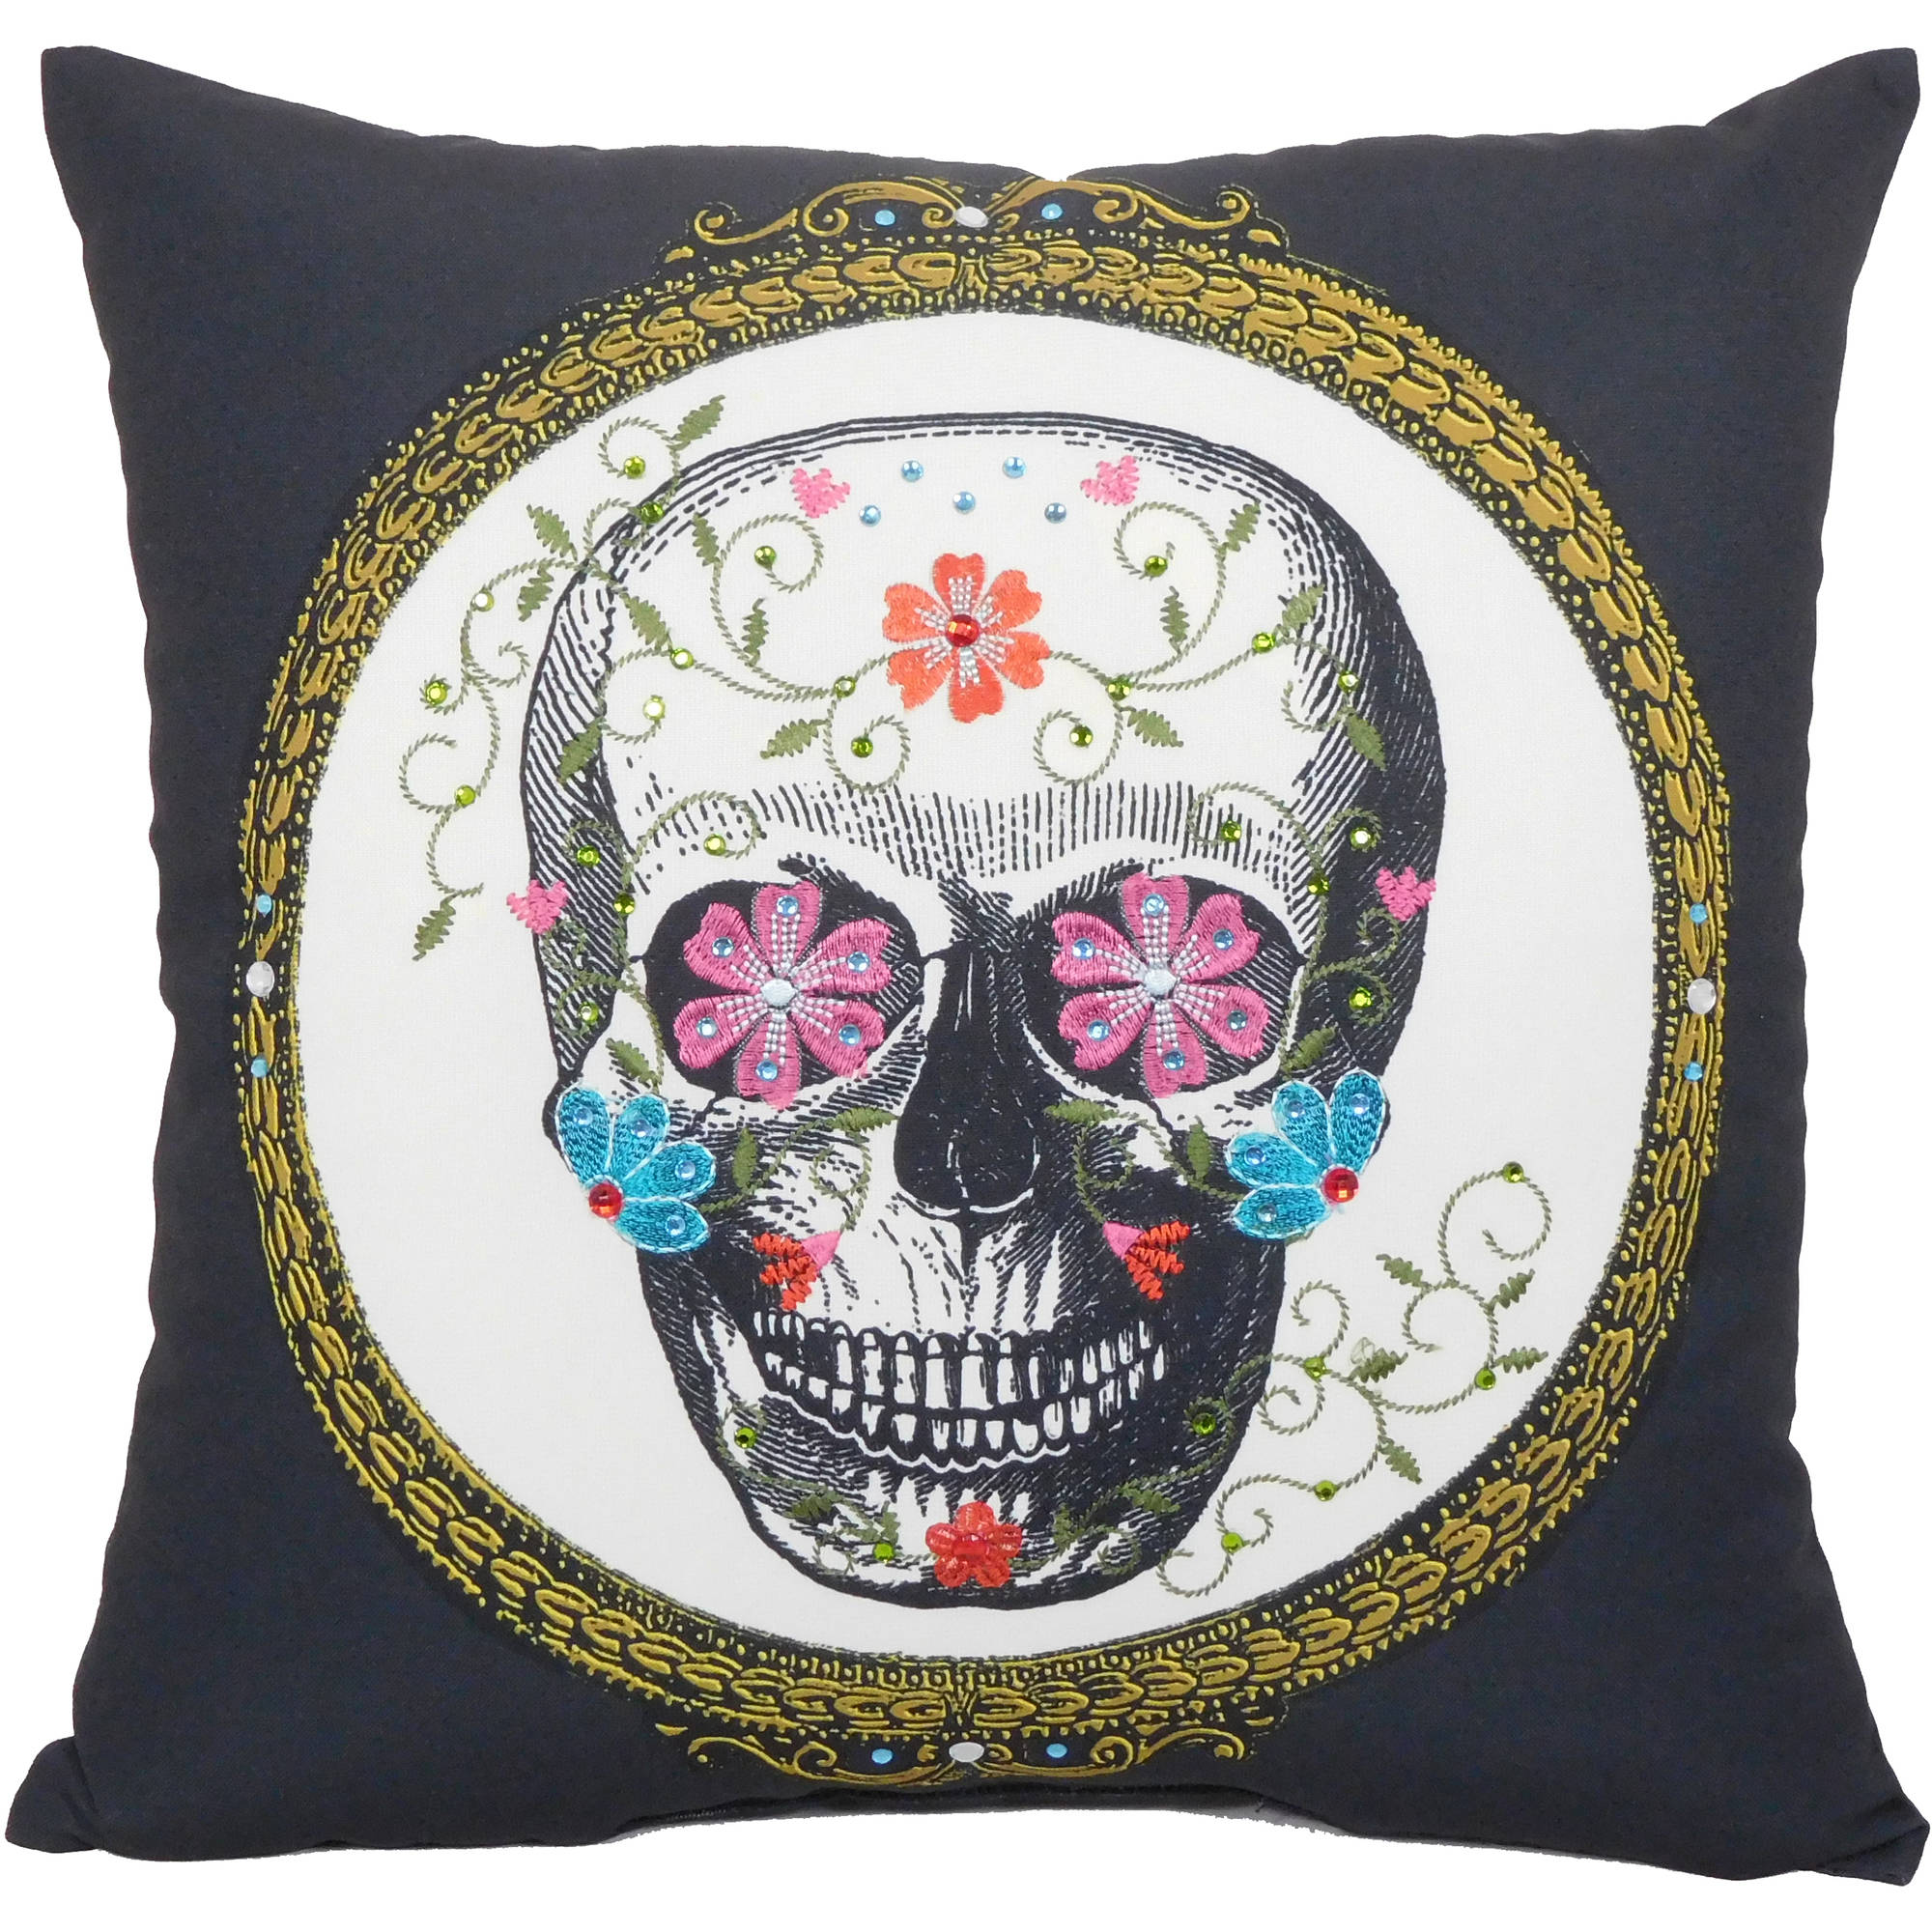 "Framed Sugar Skull Decorative Throw Pillow, 18""x18"", 1 Piece"